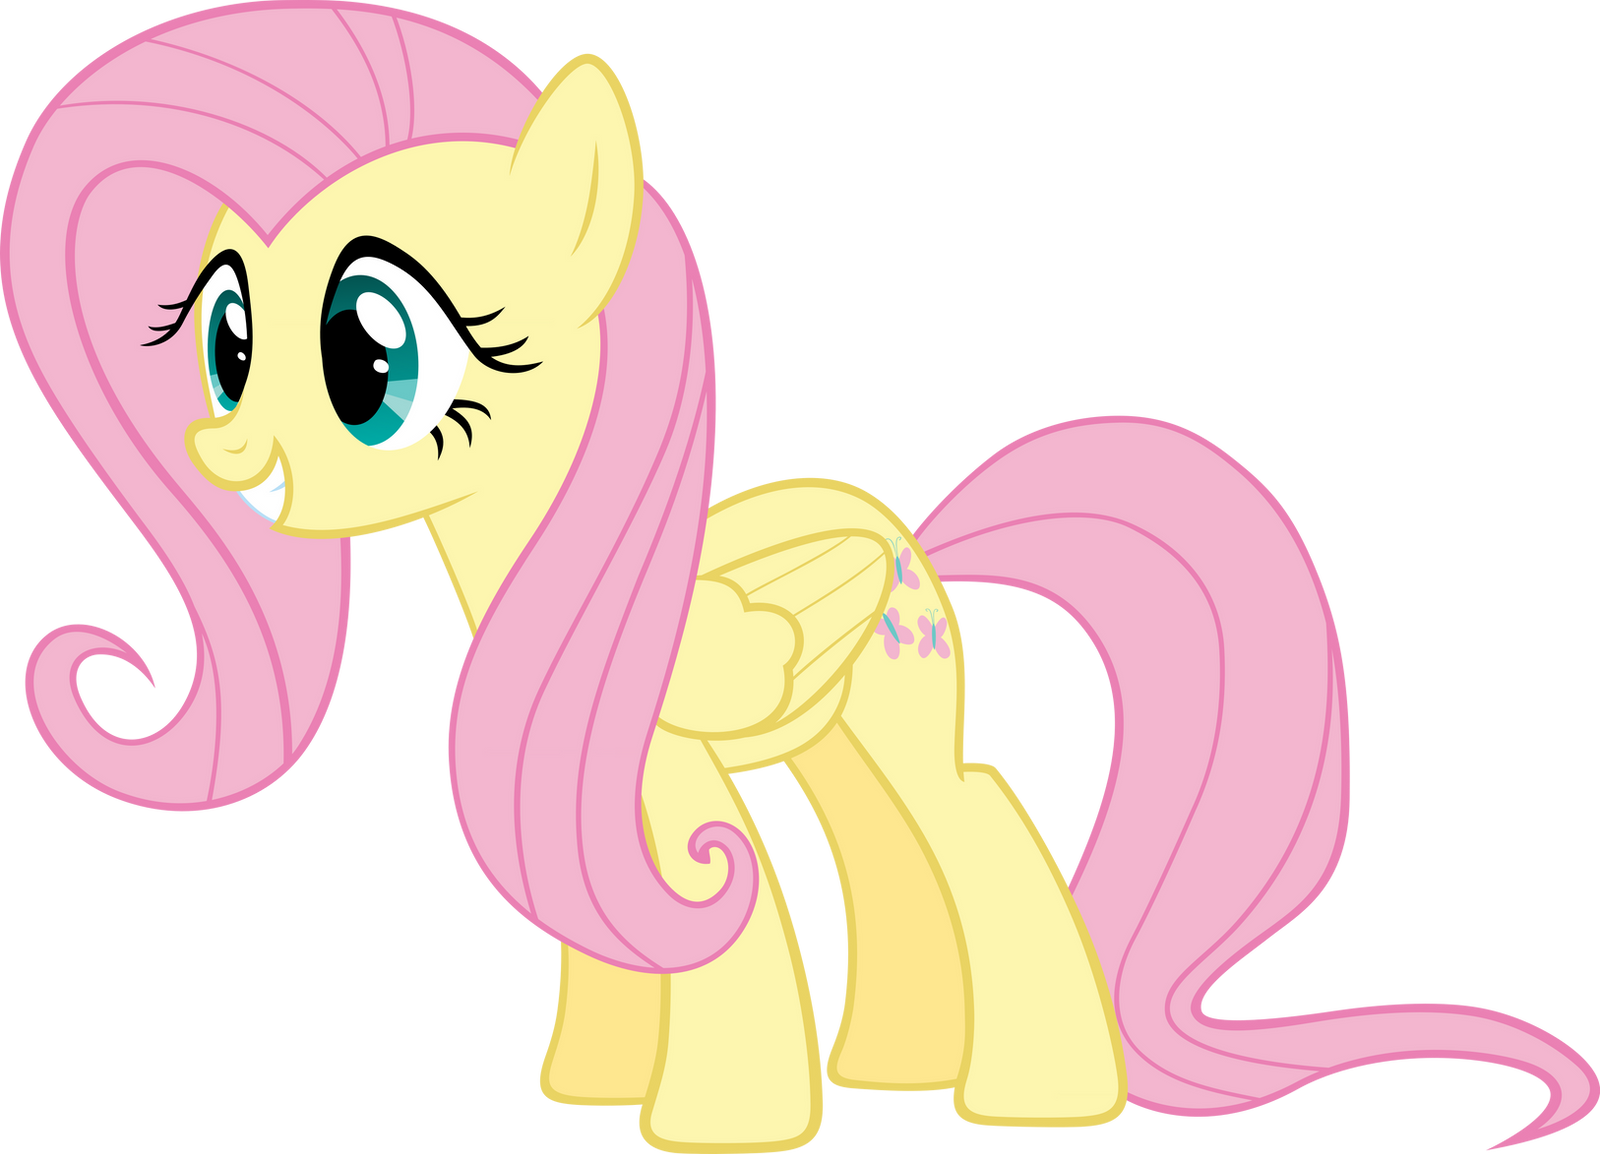 fluttershy_excited_by_myardius-d57ban2.p